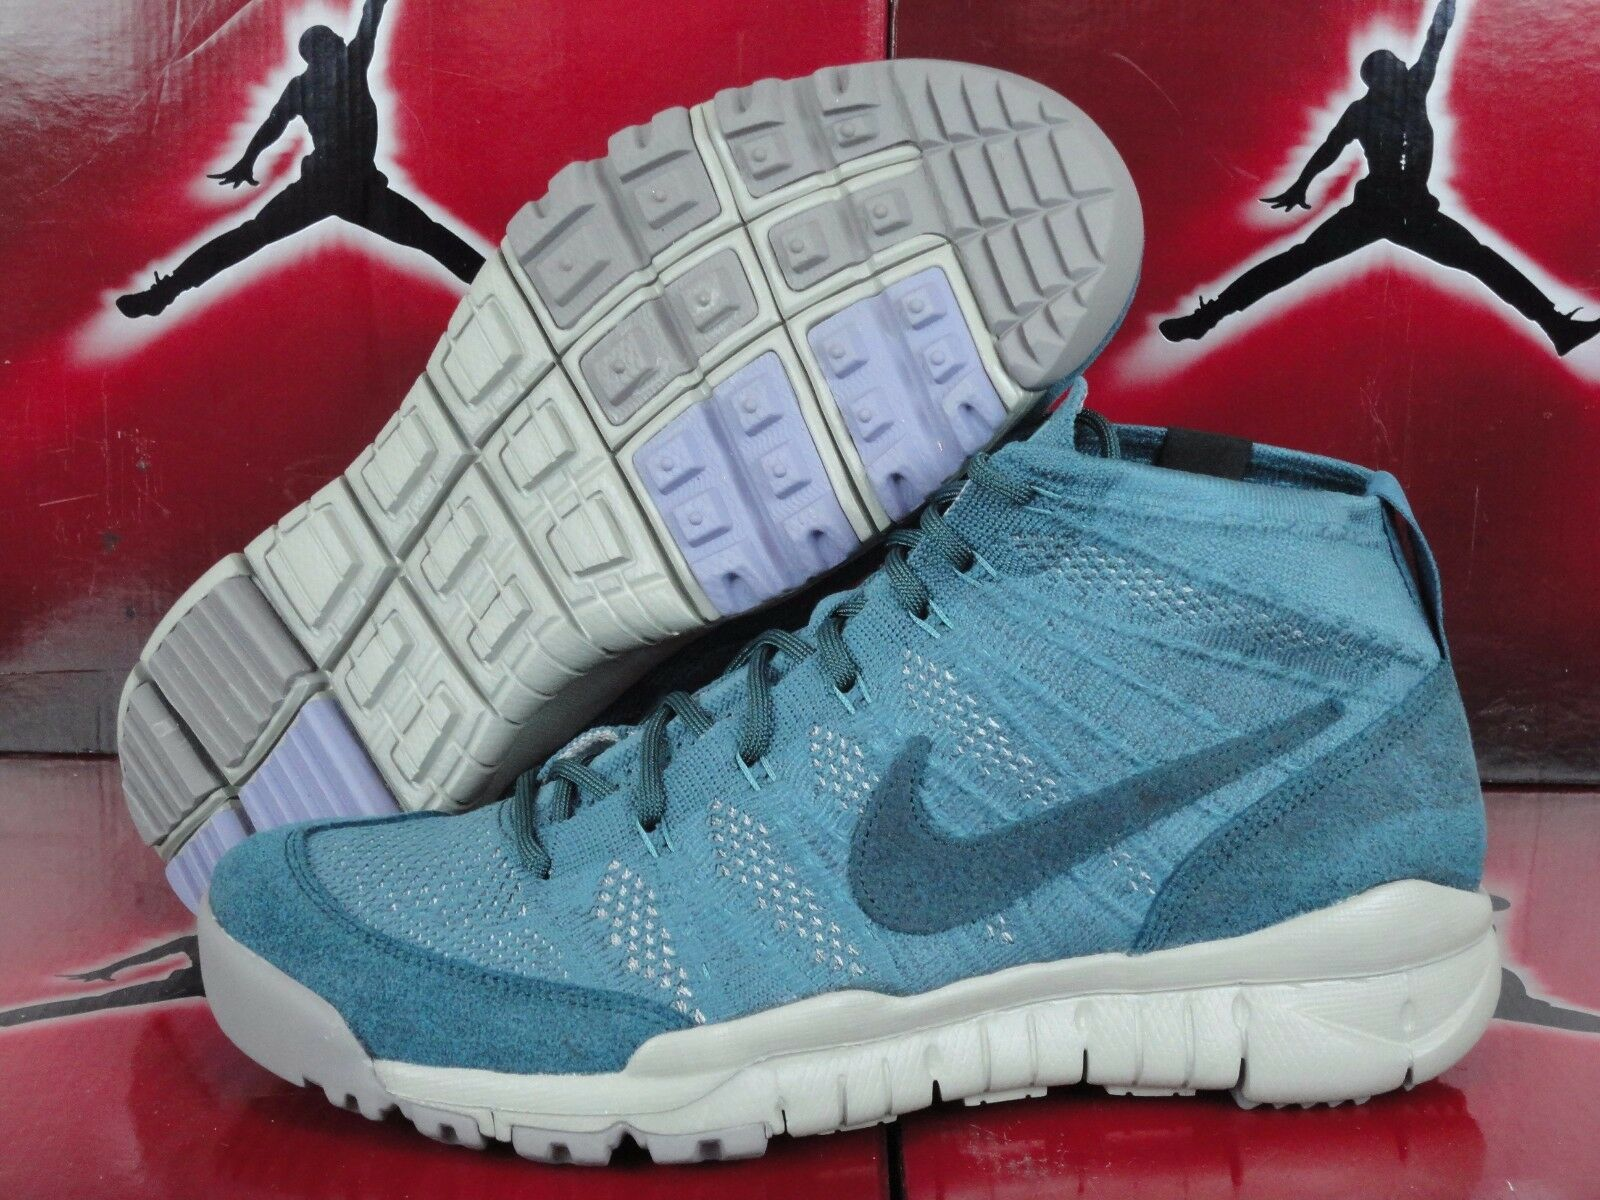 NIKE LAB FLYKNIT CHUKKA SFB TOTAL NIGHT FACTOR SIZE 8 MENS 652961-330 The latest discount shoes for men and women